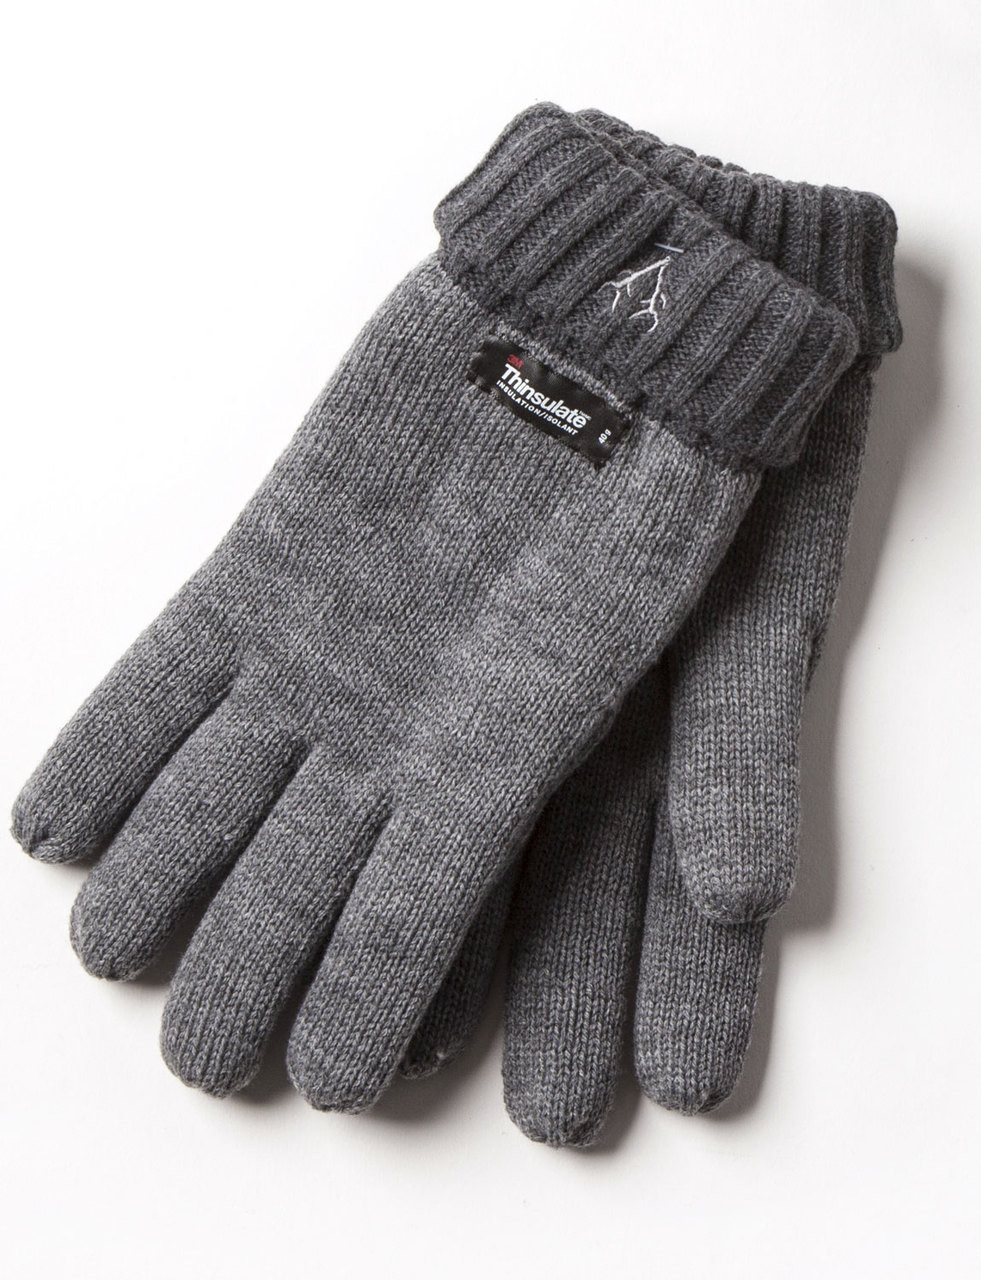 7581982aff7 Mens Thinsulate Gloves